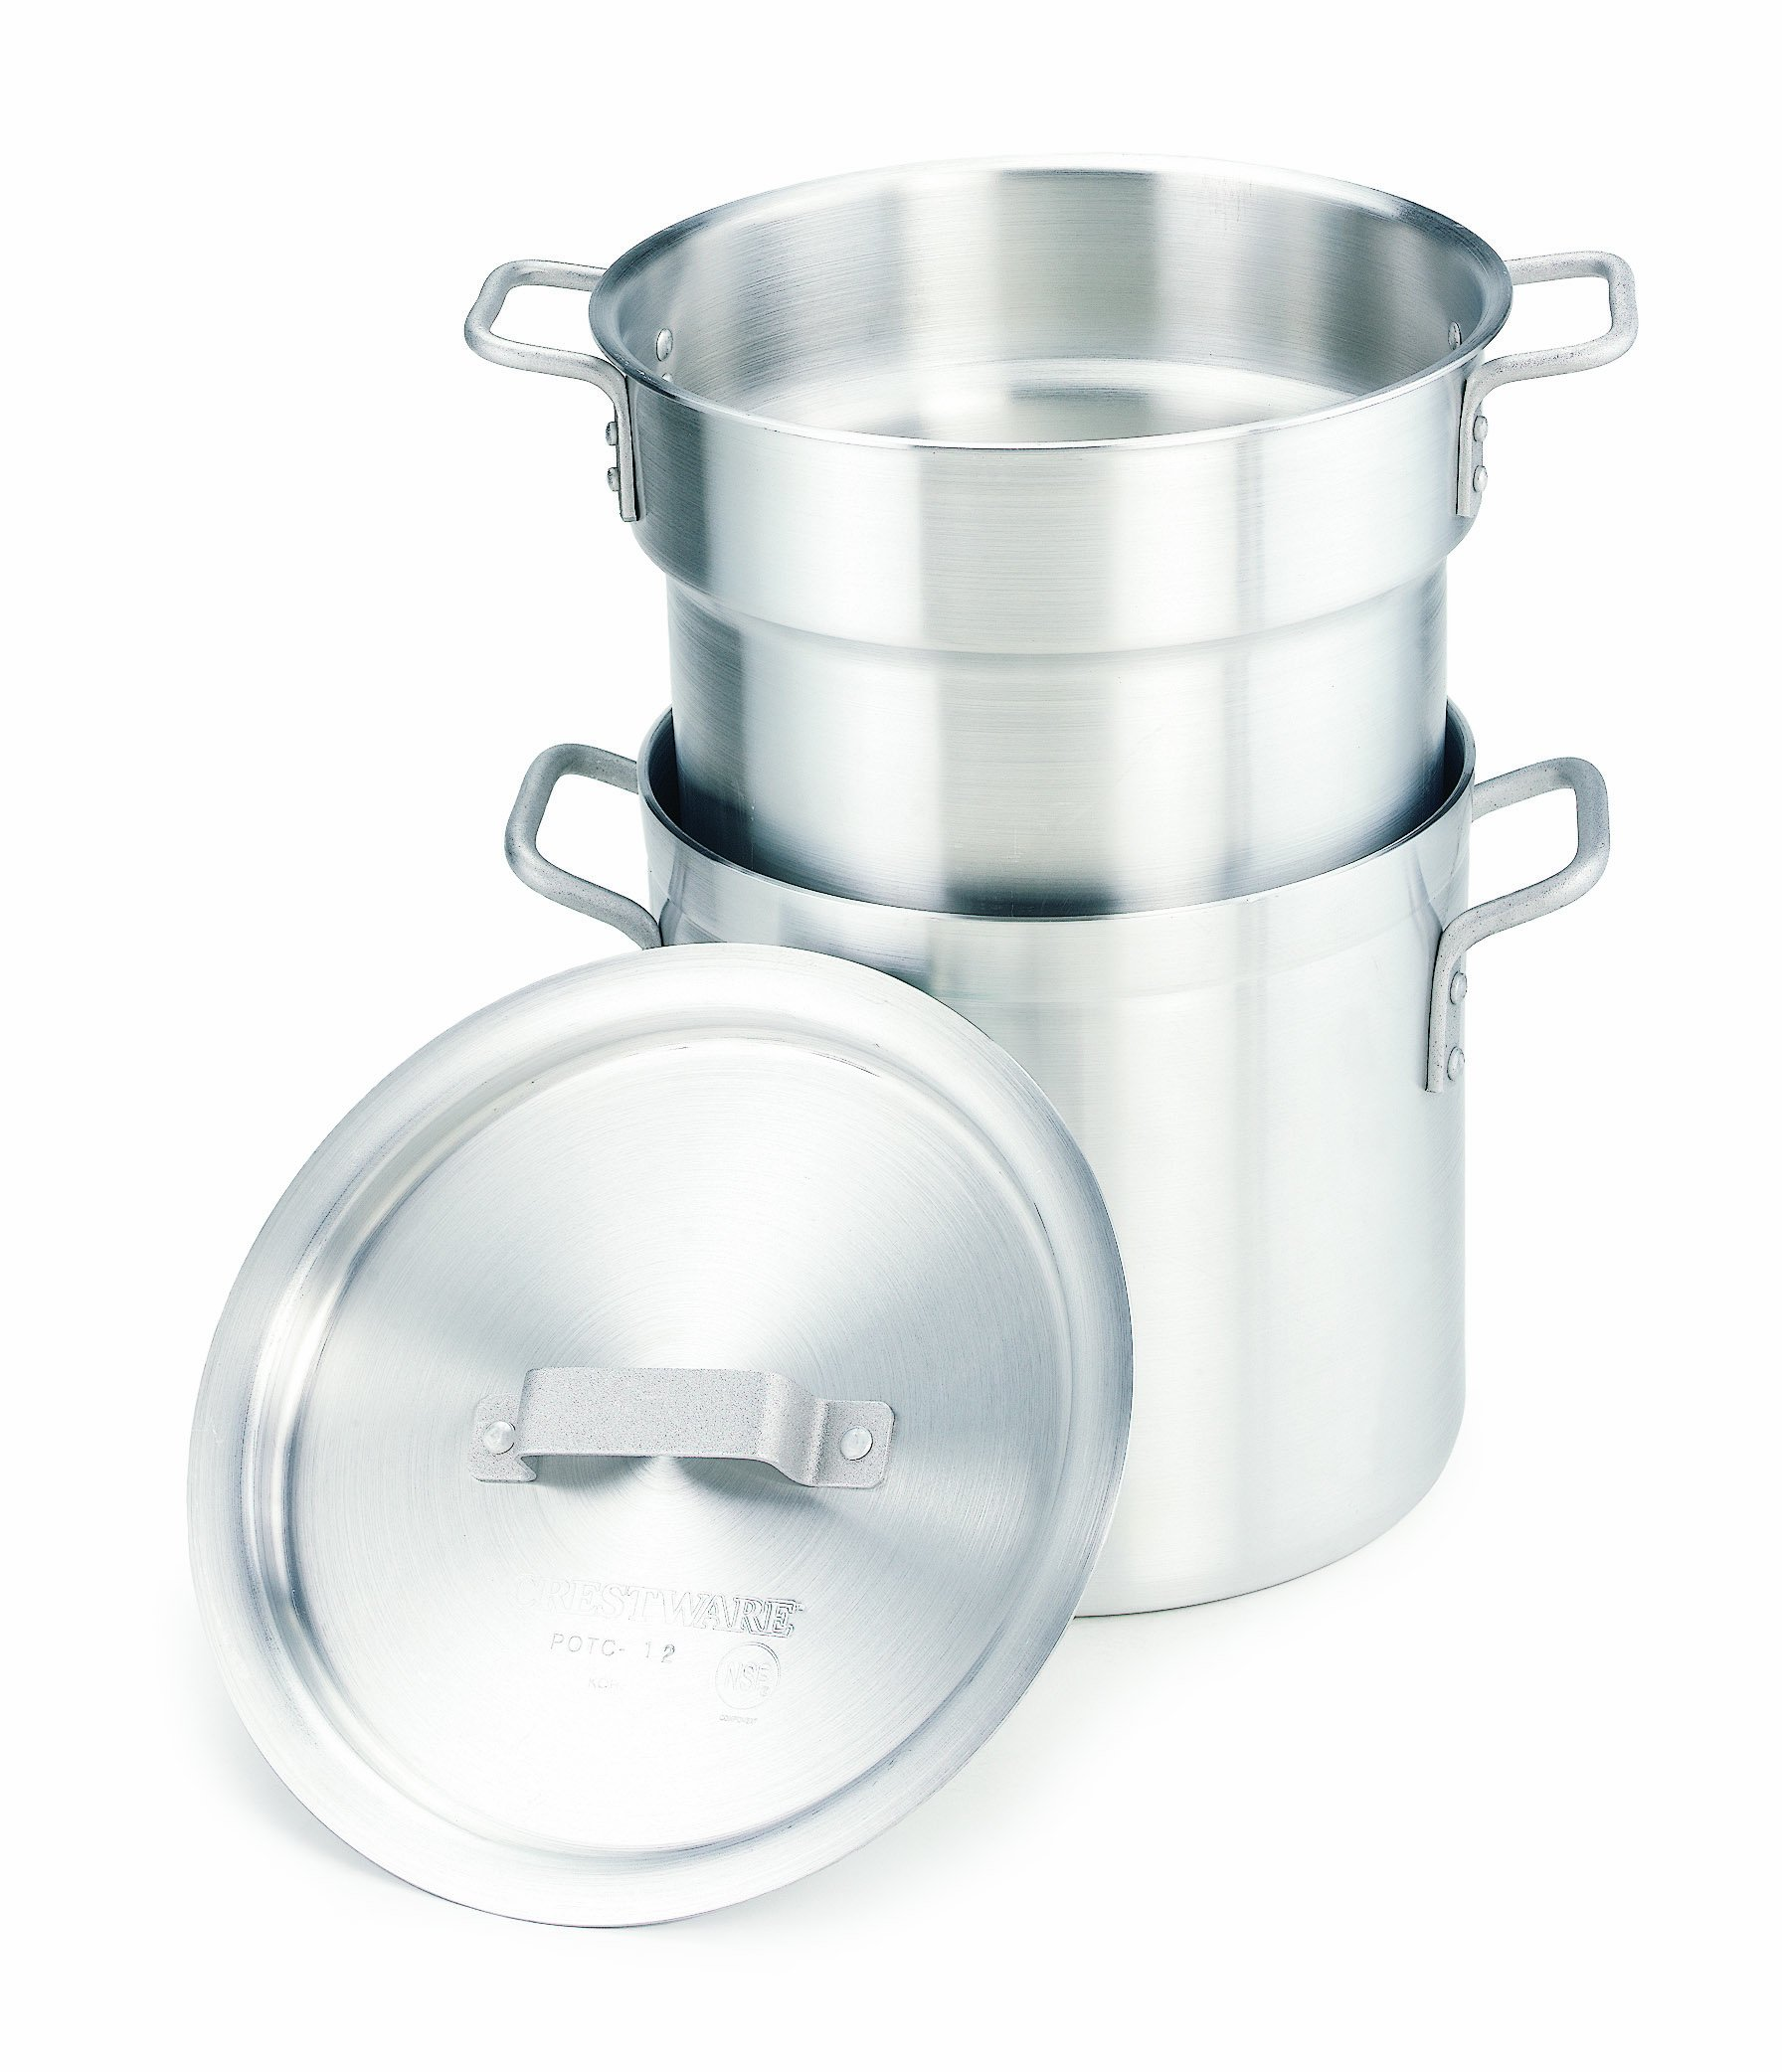 Crestware 12-Quart Heavy Weight Aluminum Double Boiler with 11 Quarter Inset Capacity by CRESTWARE